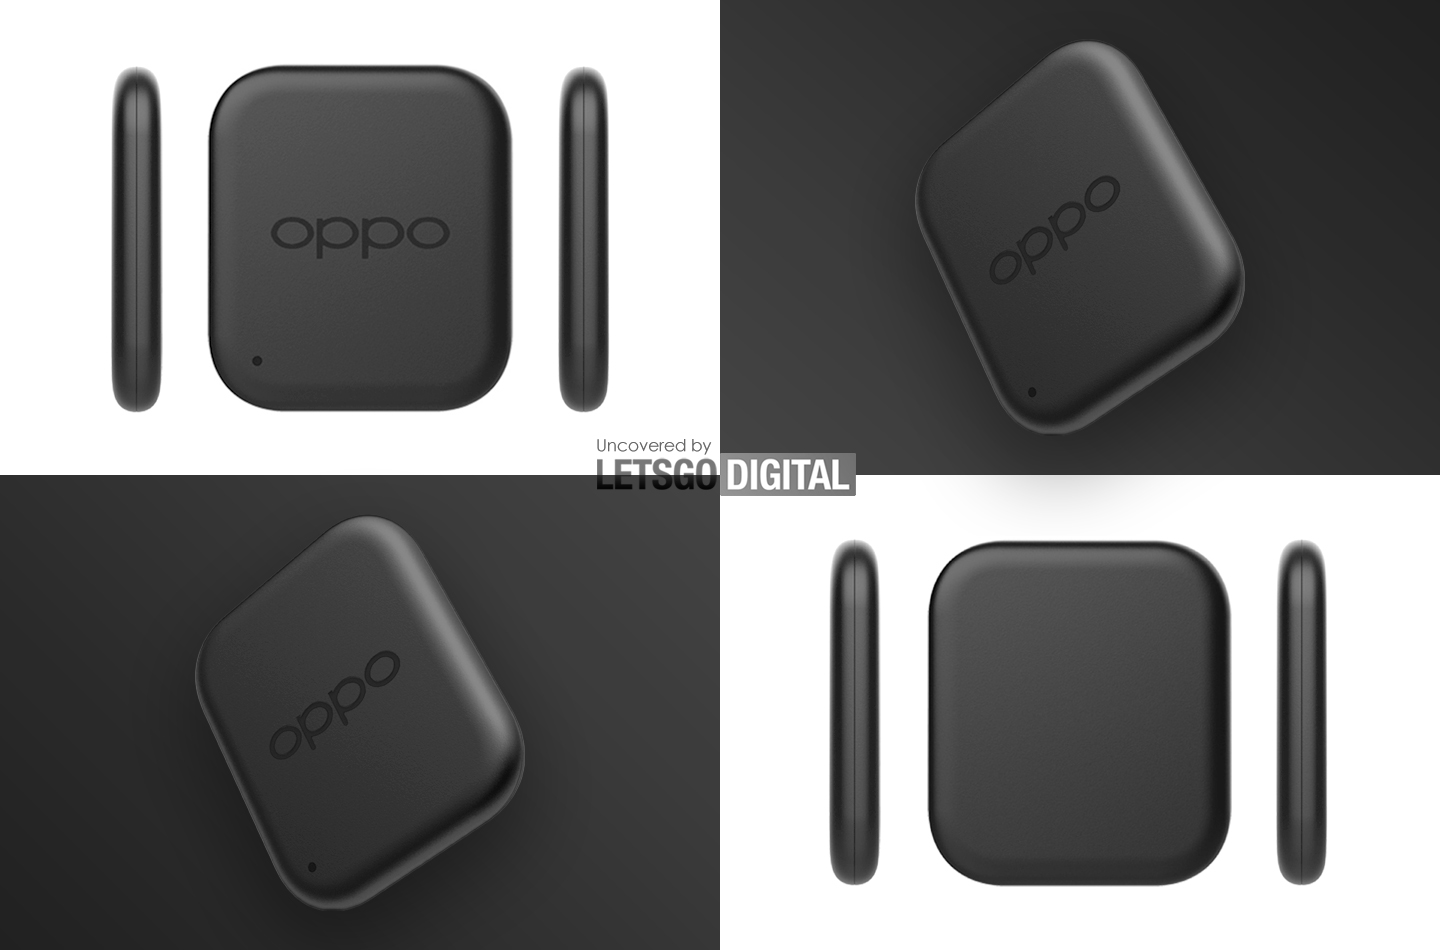 Oppo Smart Tag Bluetooth tracker